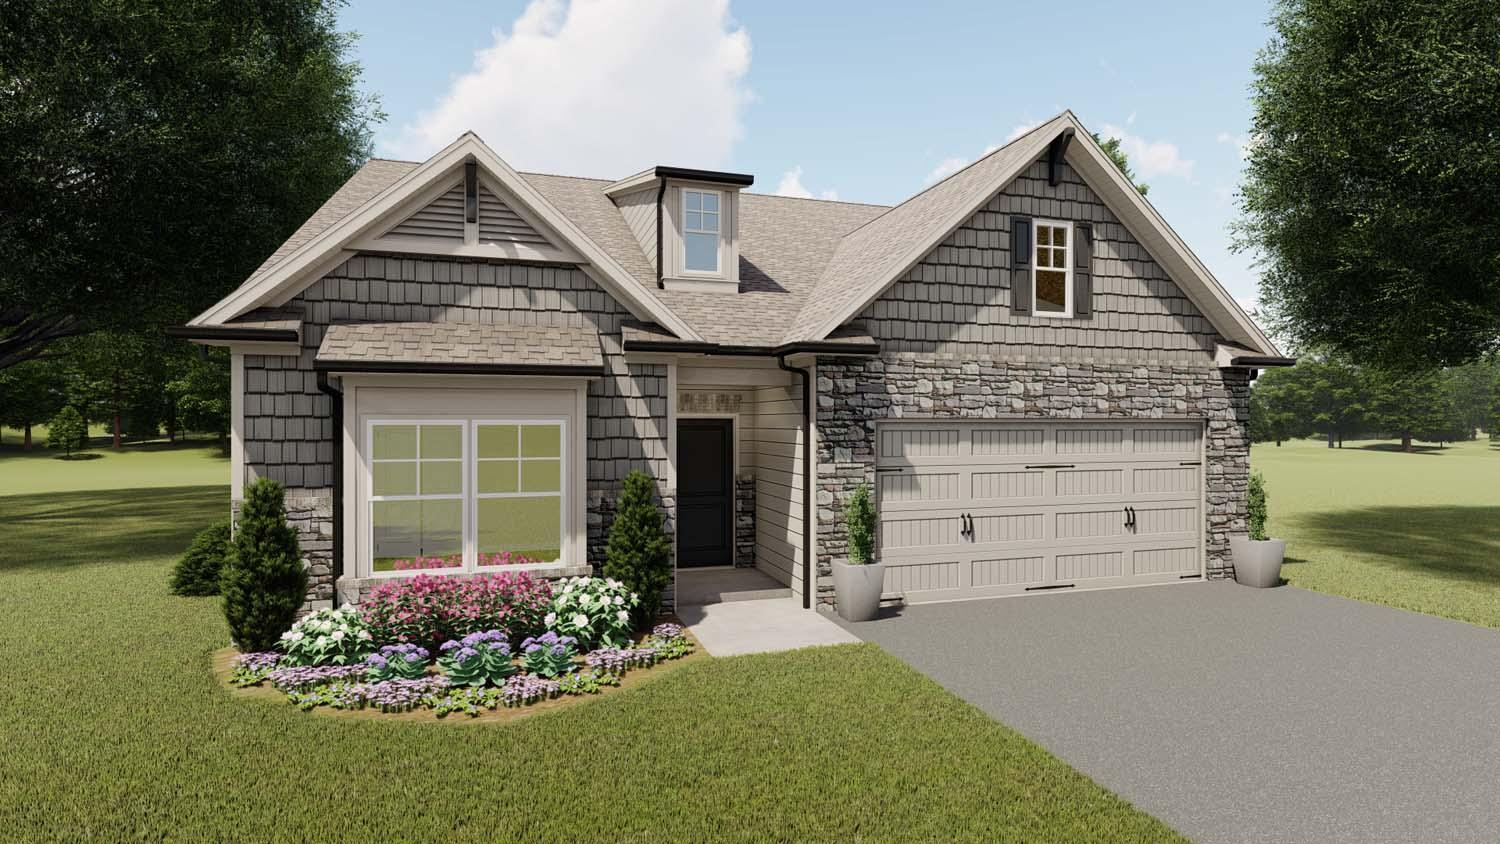 The Pebble Creek Plan by Chafin Communities